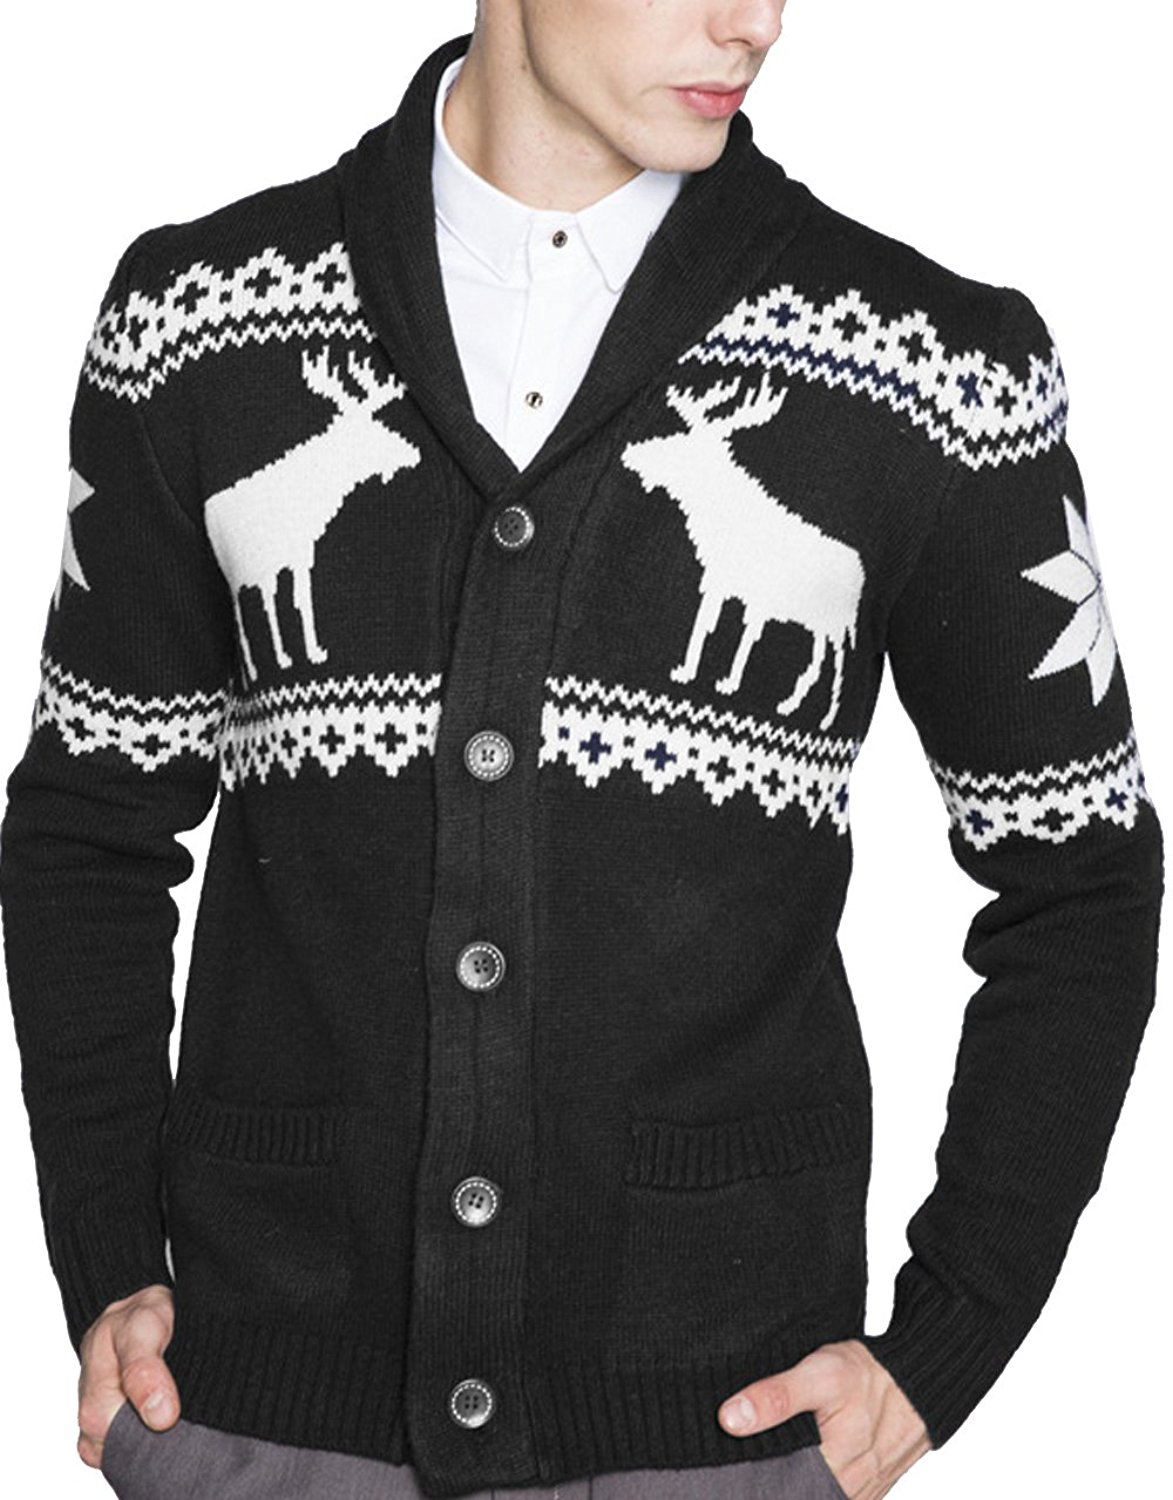 At Moose Deals Cheap Line MooseFind With On Sweater dEorxWQCBe